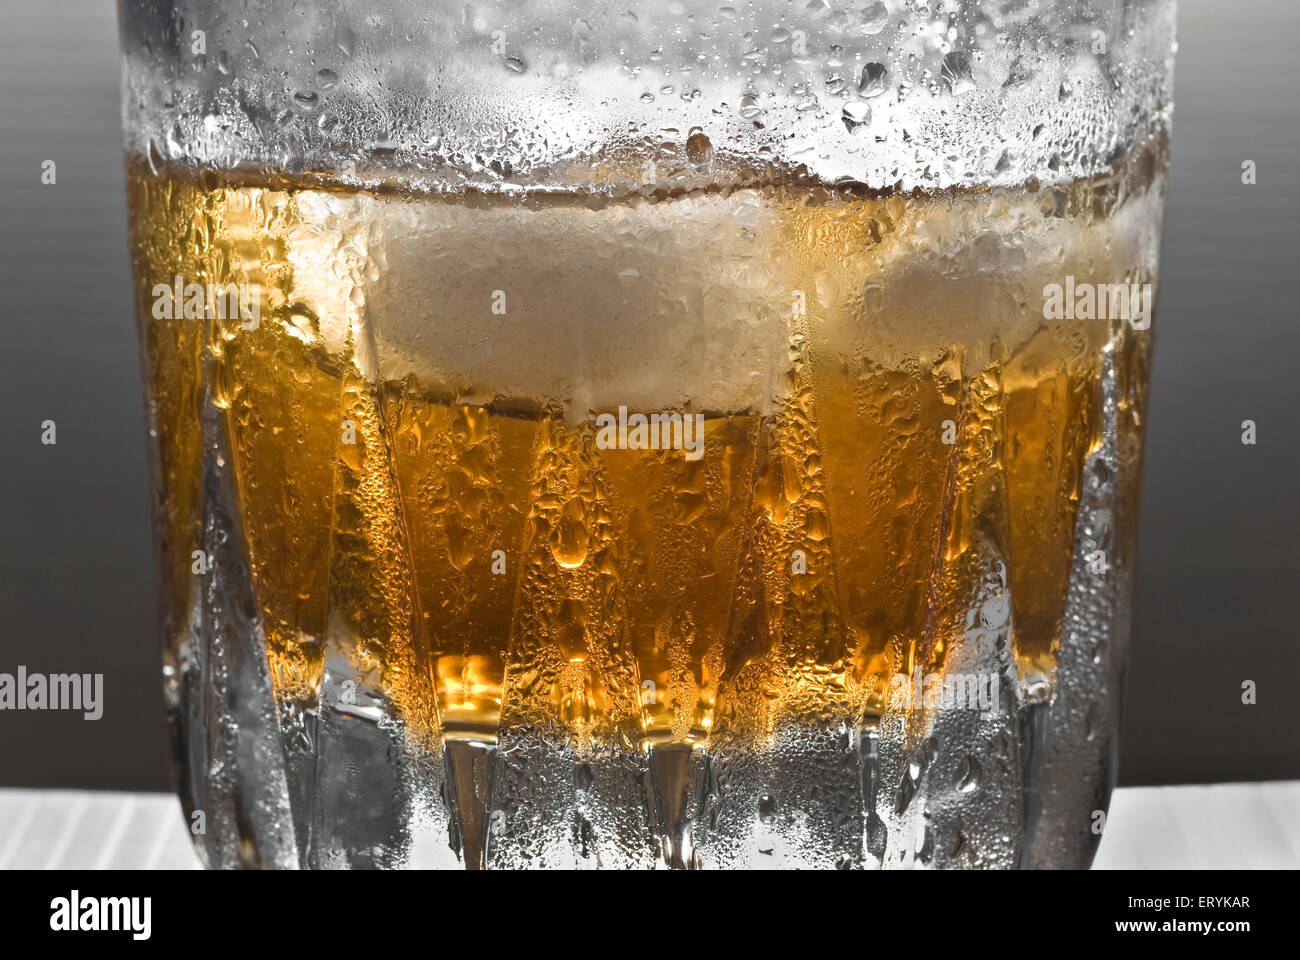 Drinks ; shimmering glass of whisky with ice - Stock Image